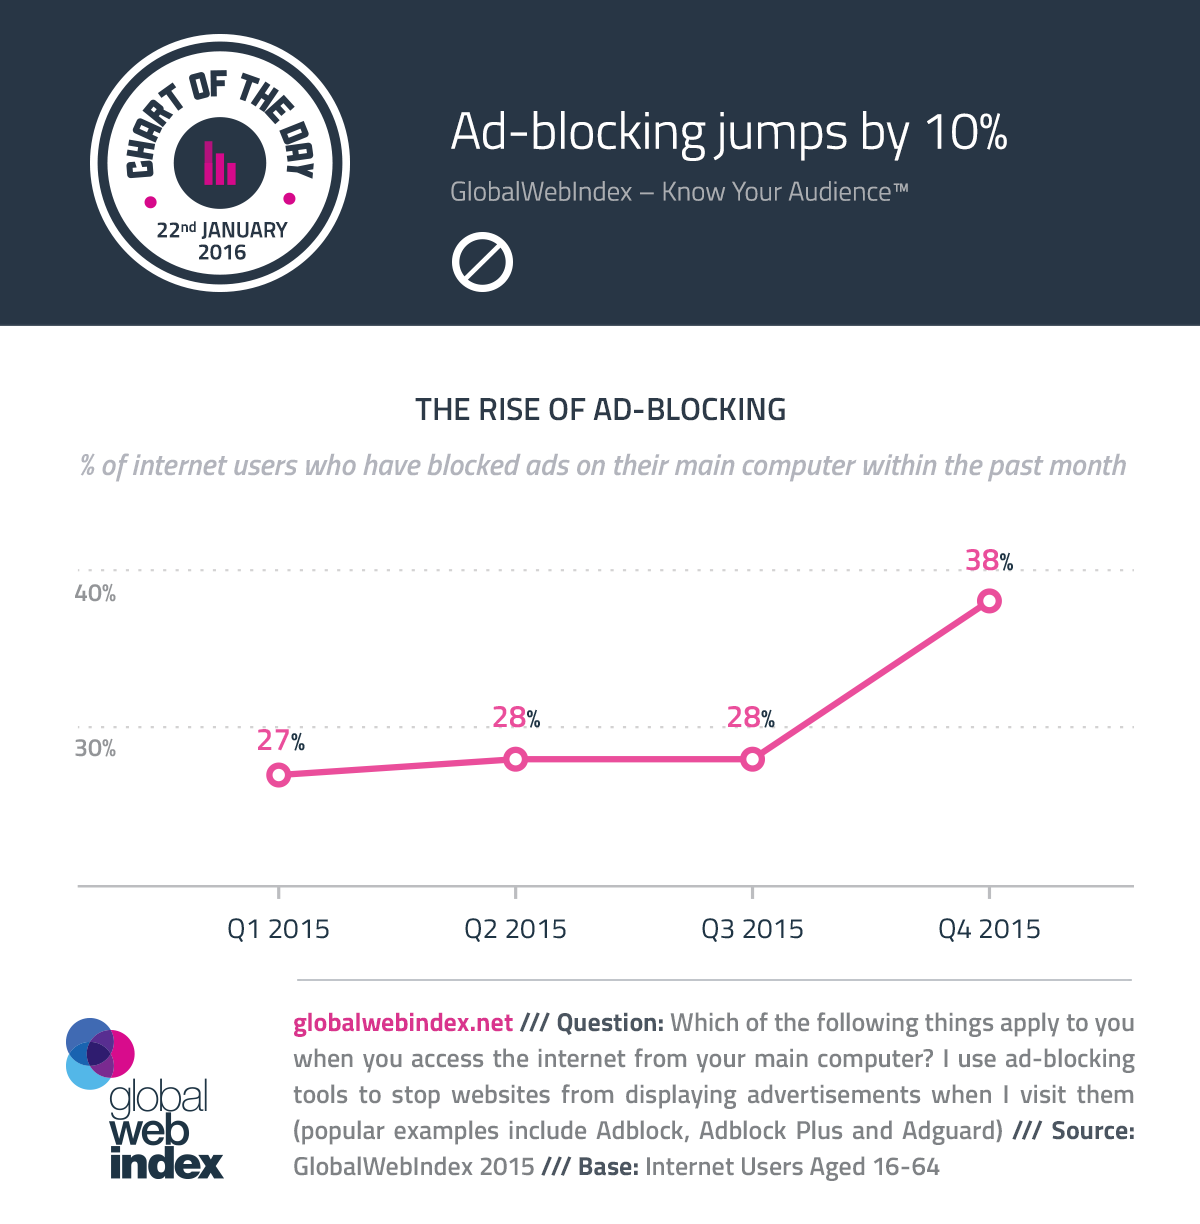 Ad-blocking jumps by 10%